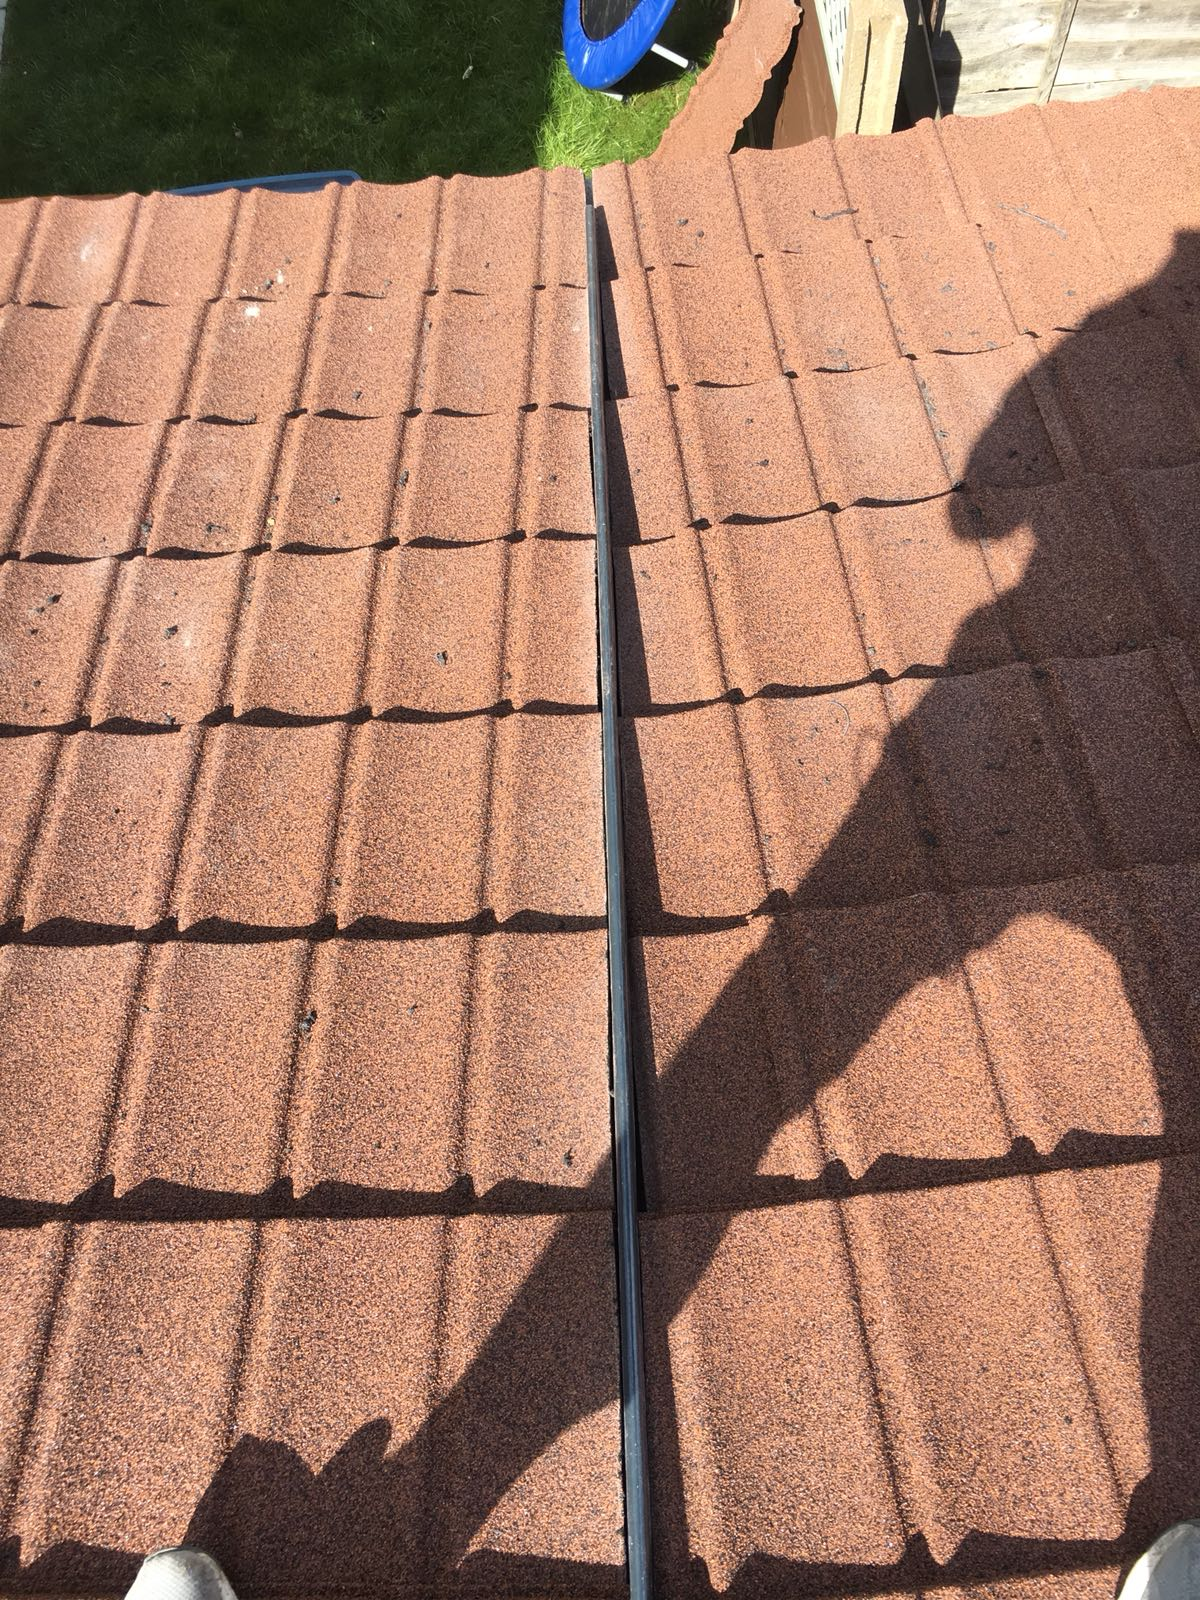 lightweight tiles, roof, extension work